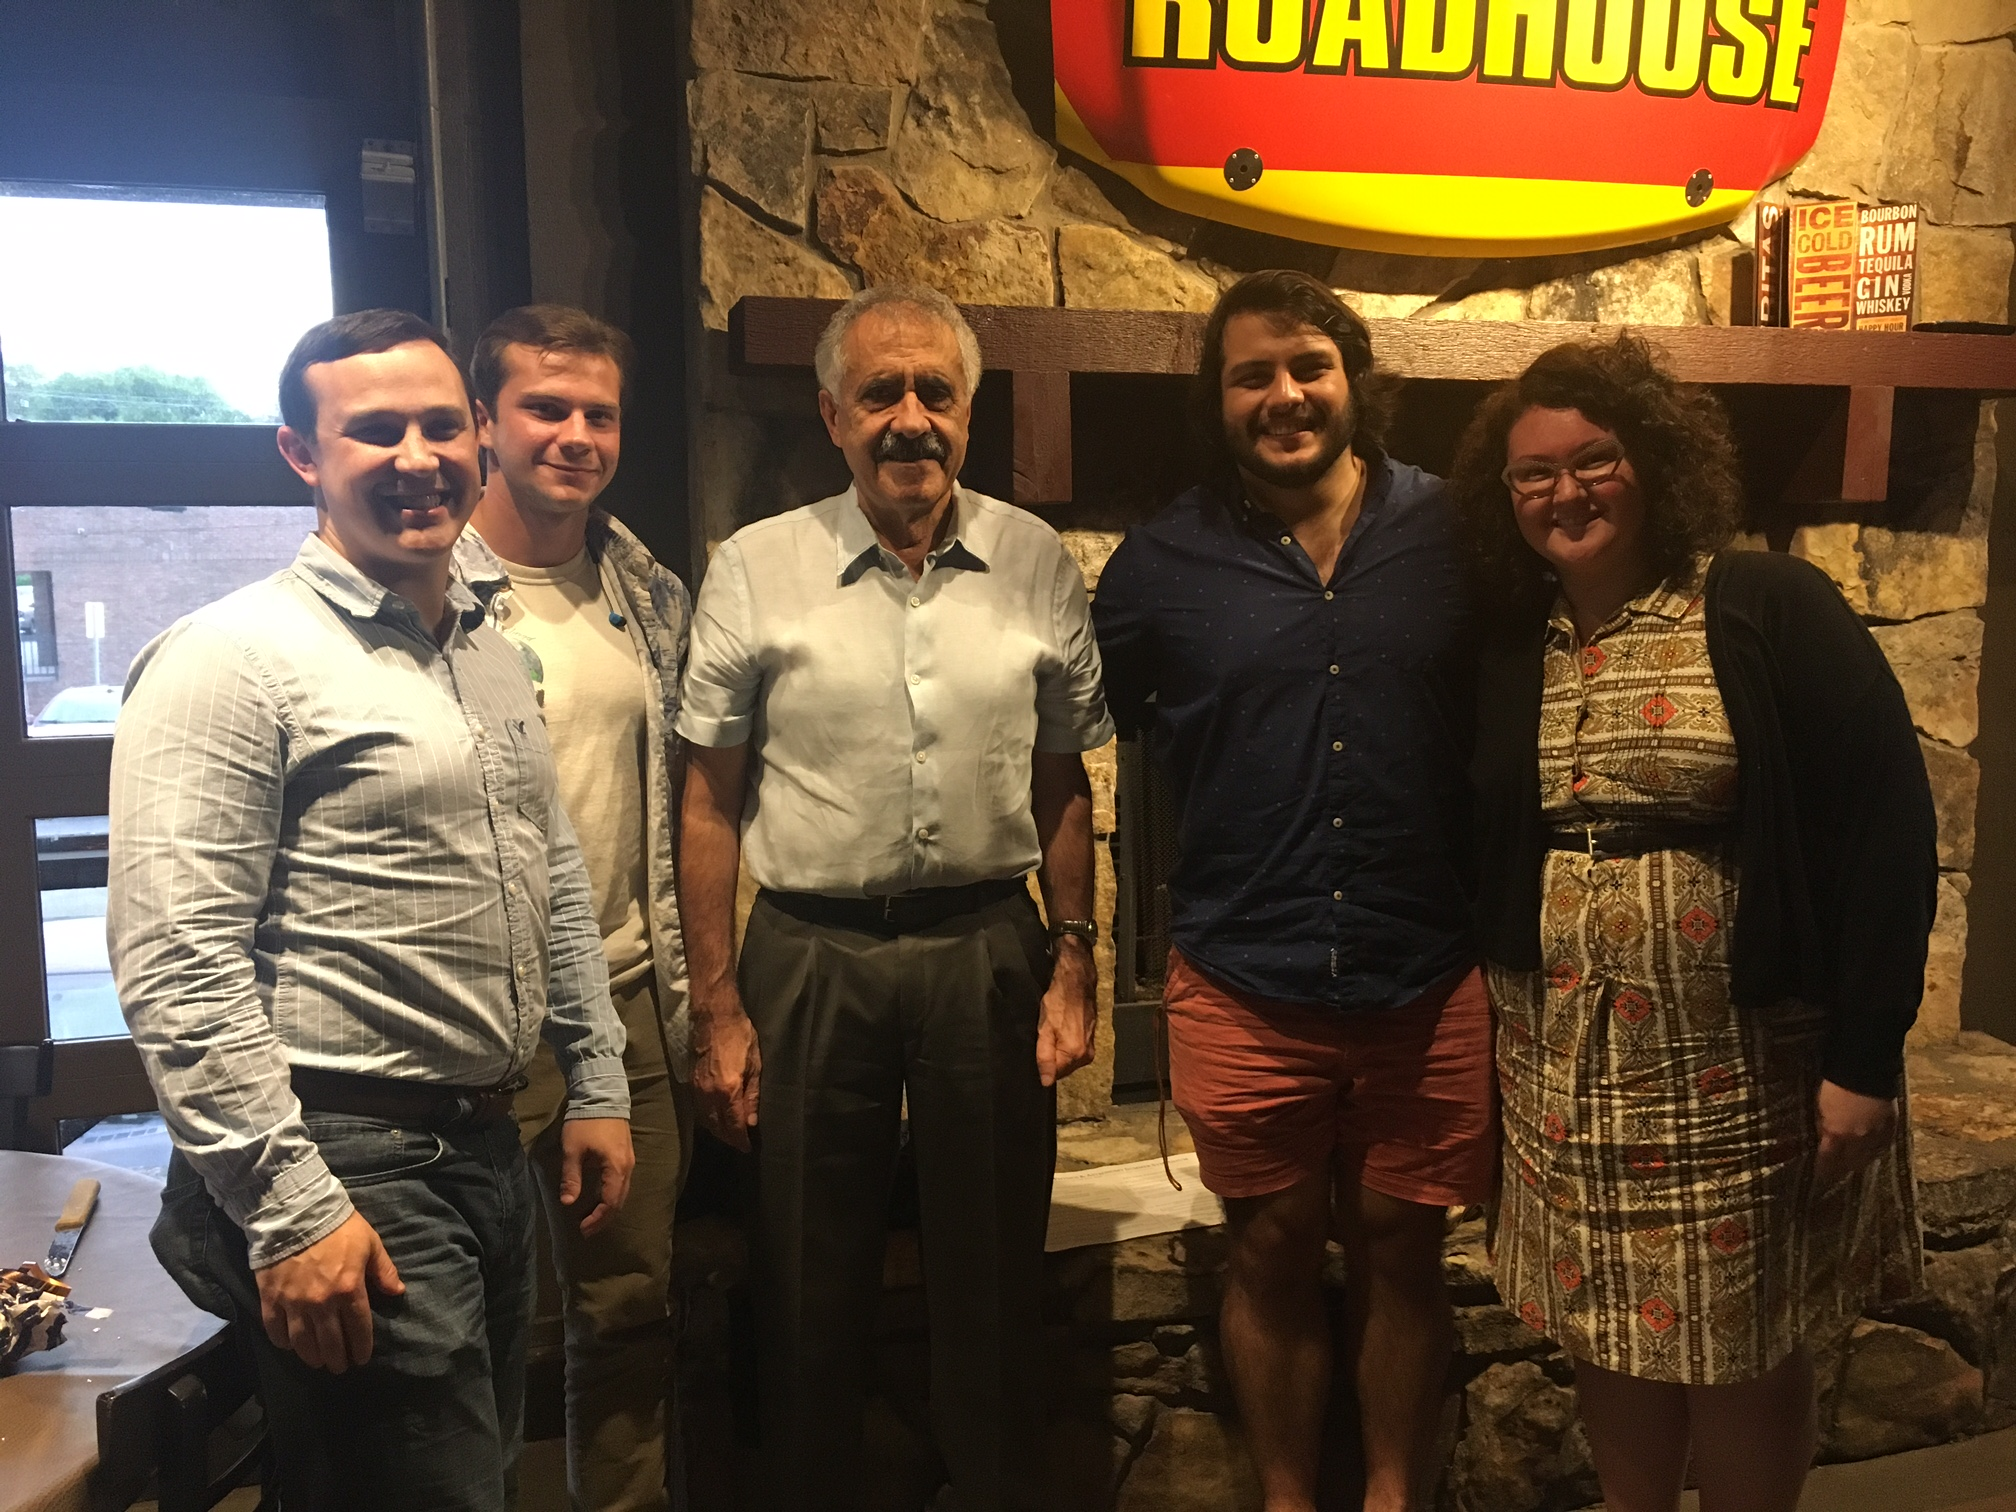 Summer 2017 Undergraduate Student Intern Farewell Dinner. [From left: Andy O'Hara, Tyler Summers, Prof. Pantelides, Christian Ornelas, Ashley Brammer]